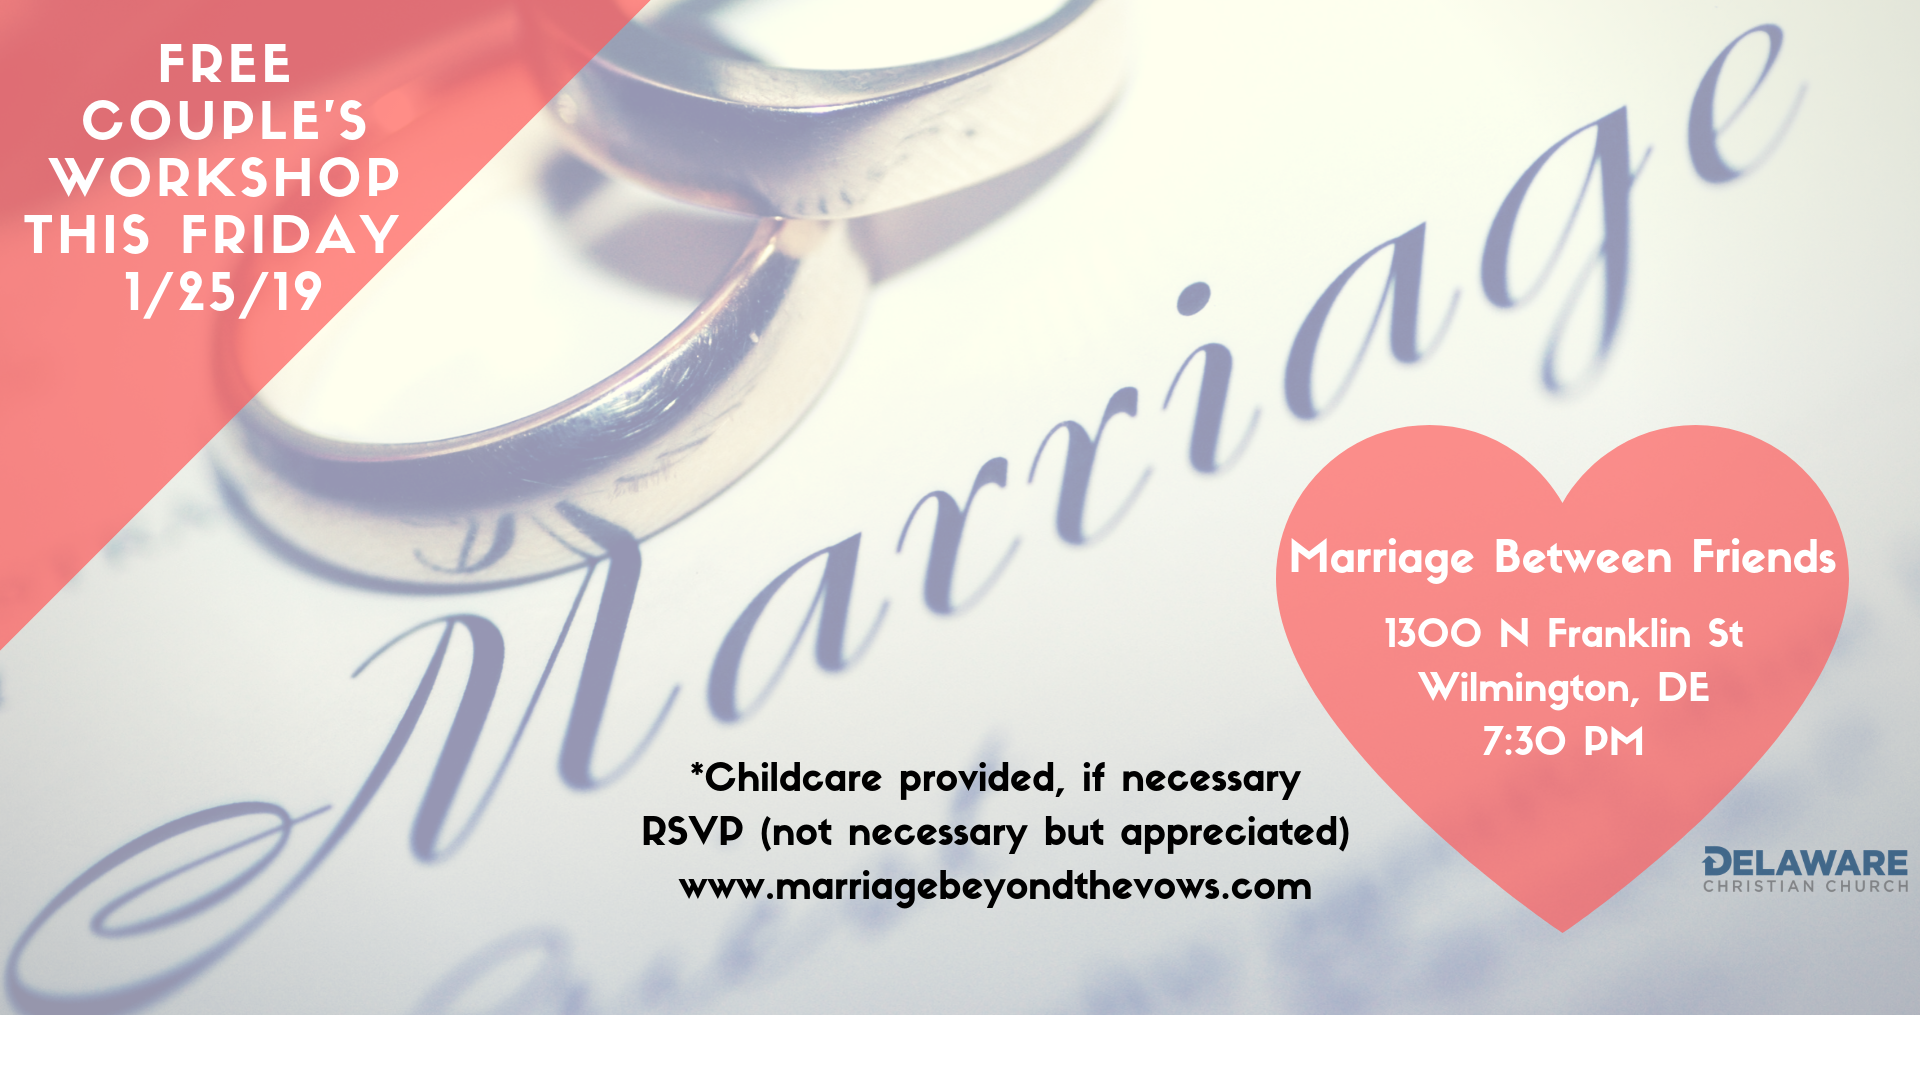 RSVP https://www.eventbrite.com/e/marriage-between-friends-couples-workshop-tickets-55132669298